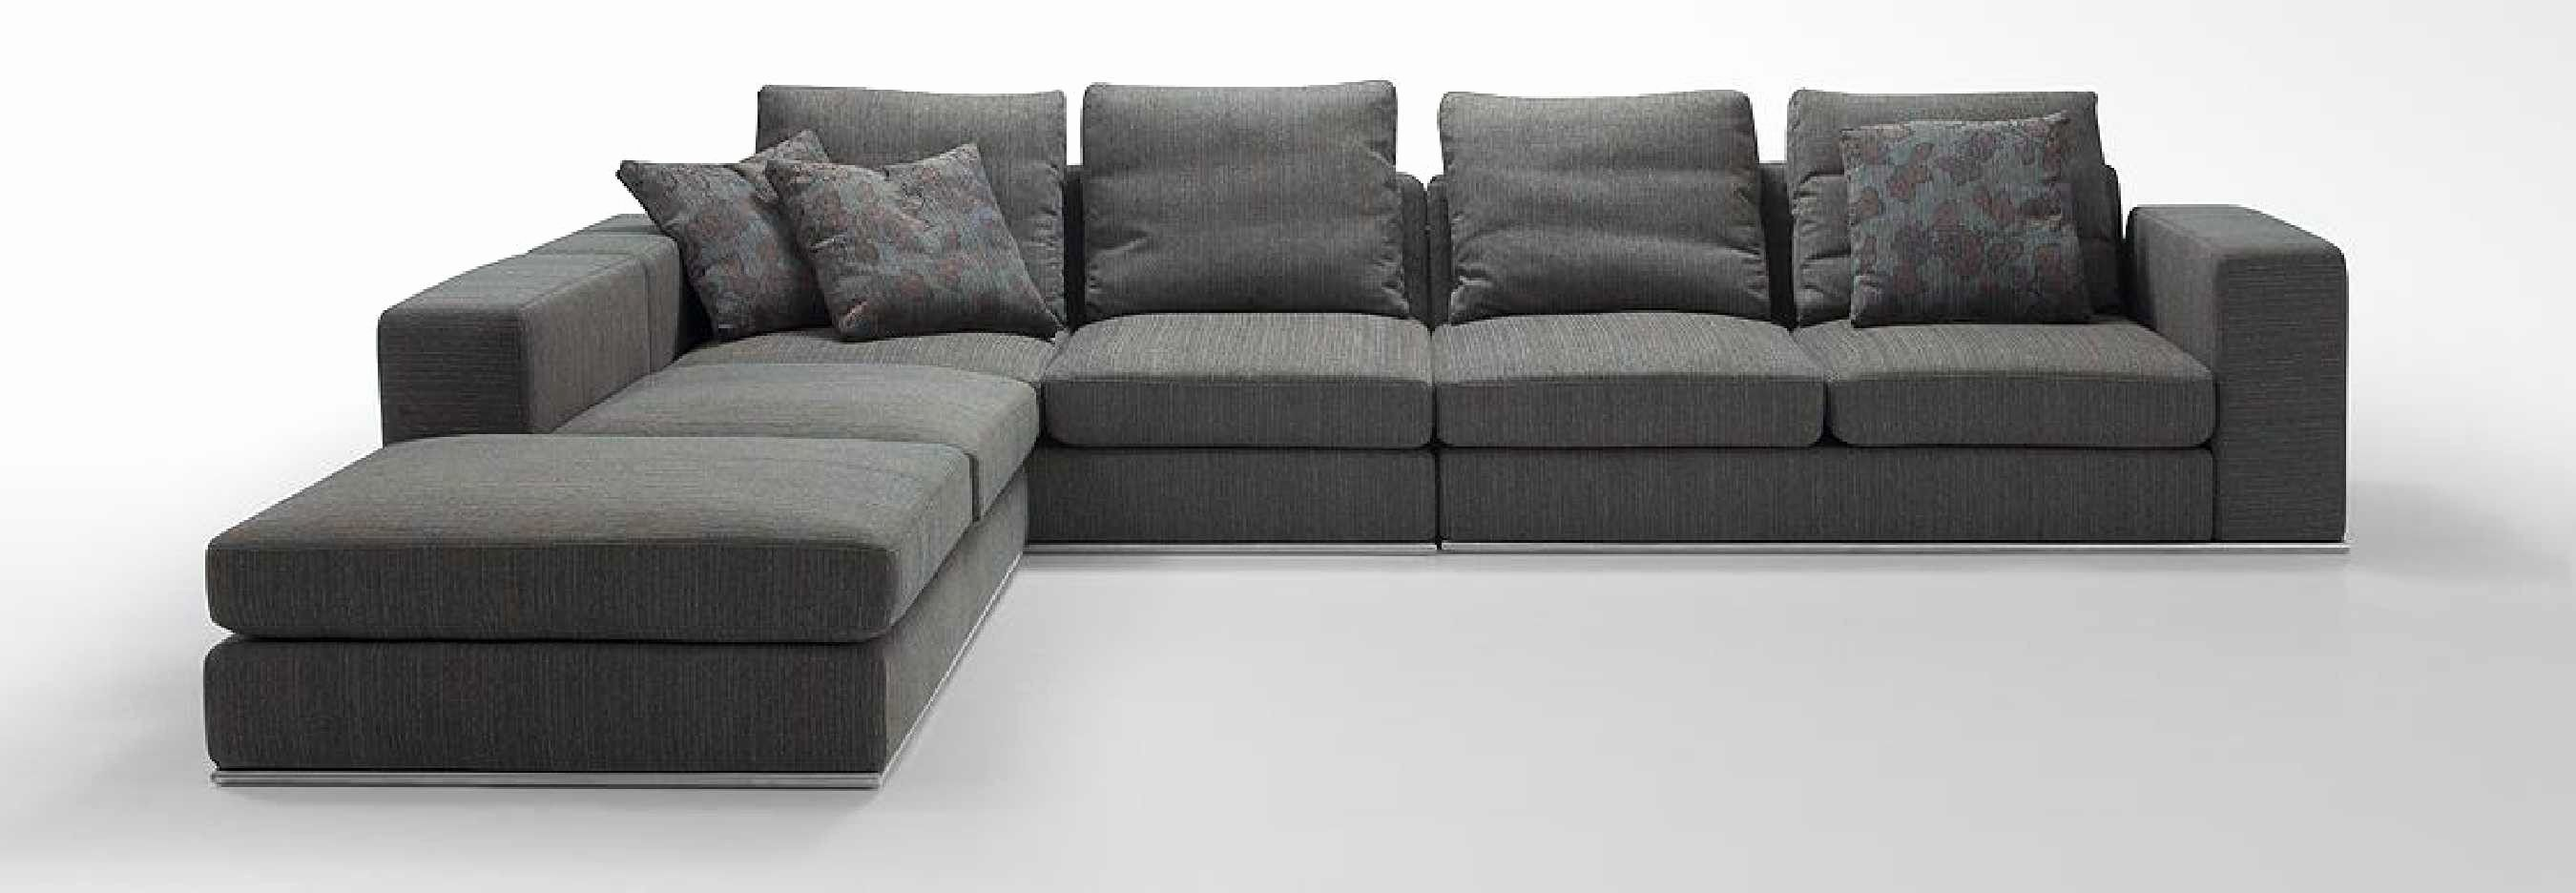 grey sectional sofa l shaped sofa bed